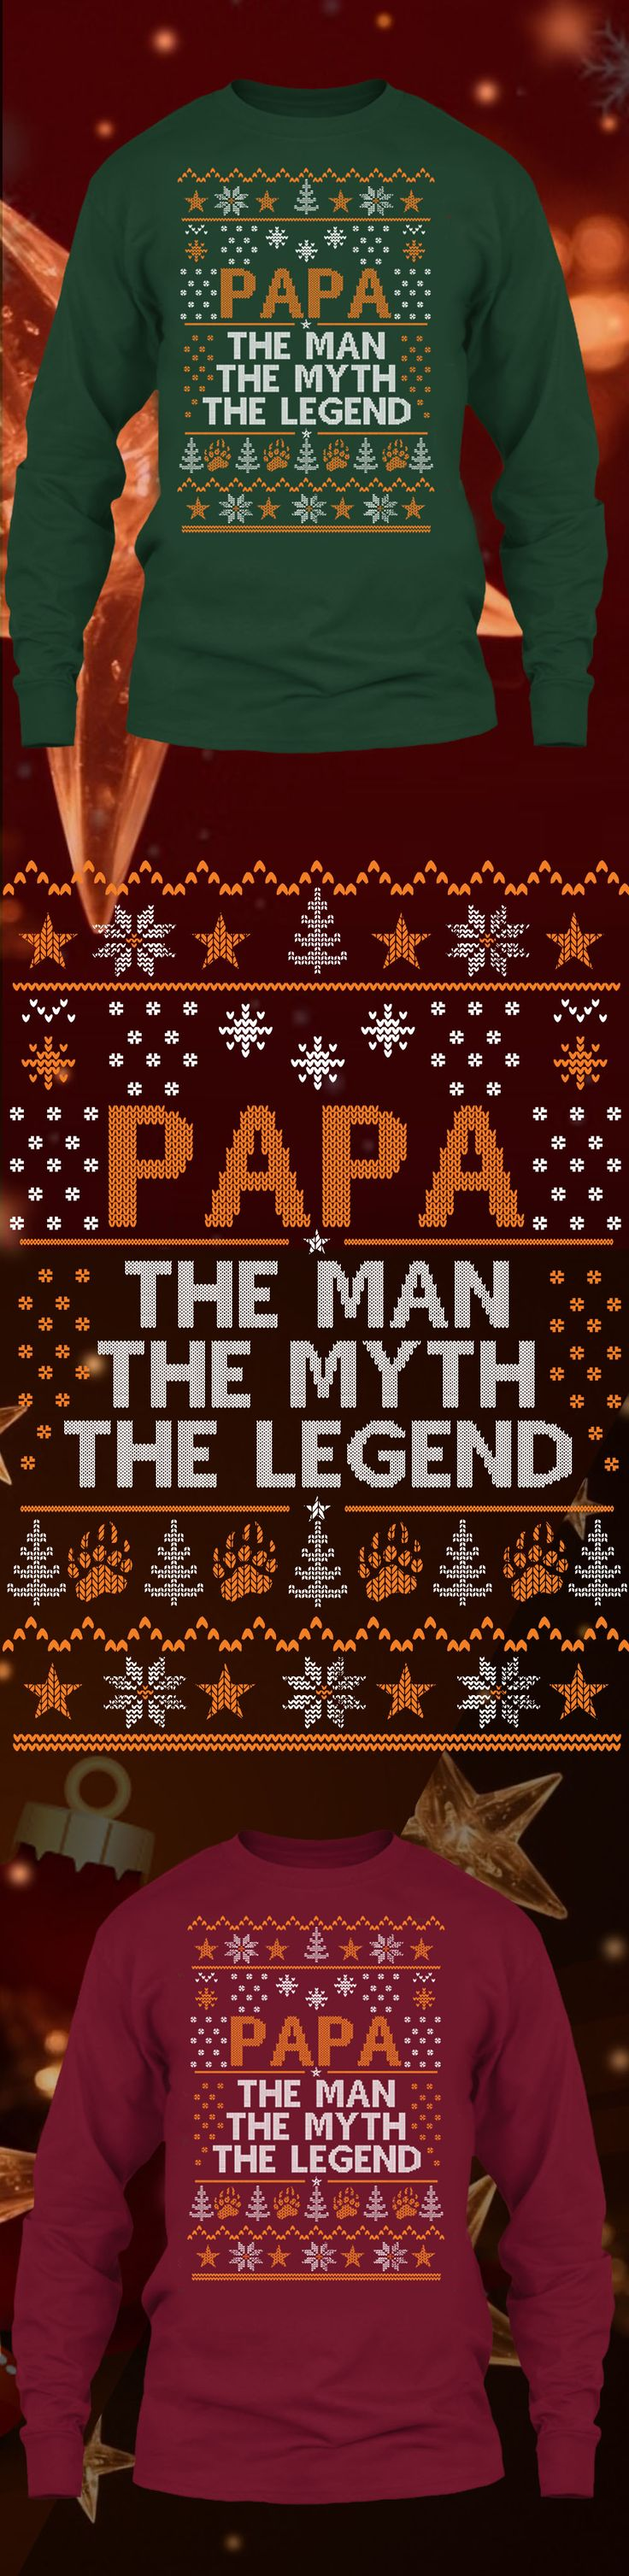 Papa The Man Christmas Sweater - Get this limited edition ugly Christmas Sweater just in time for the holidays! Only 2 days left for FREE SHIPPING, click to buy now!